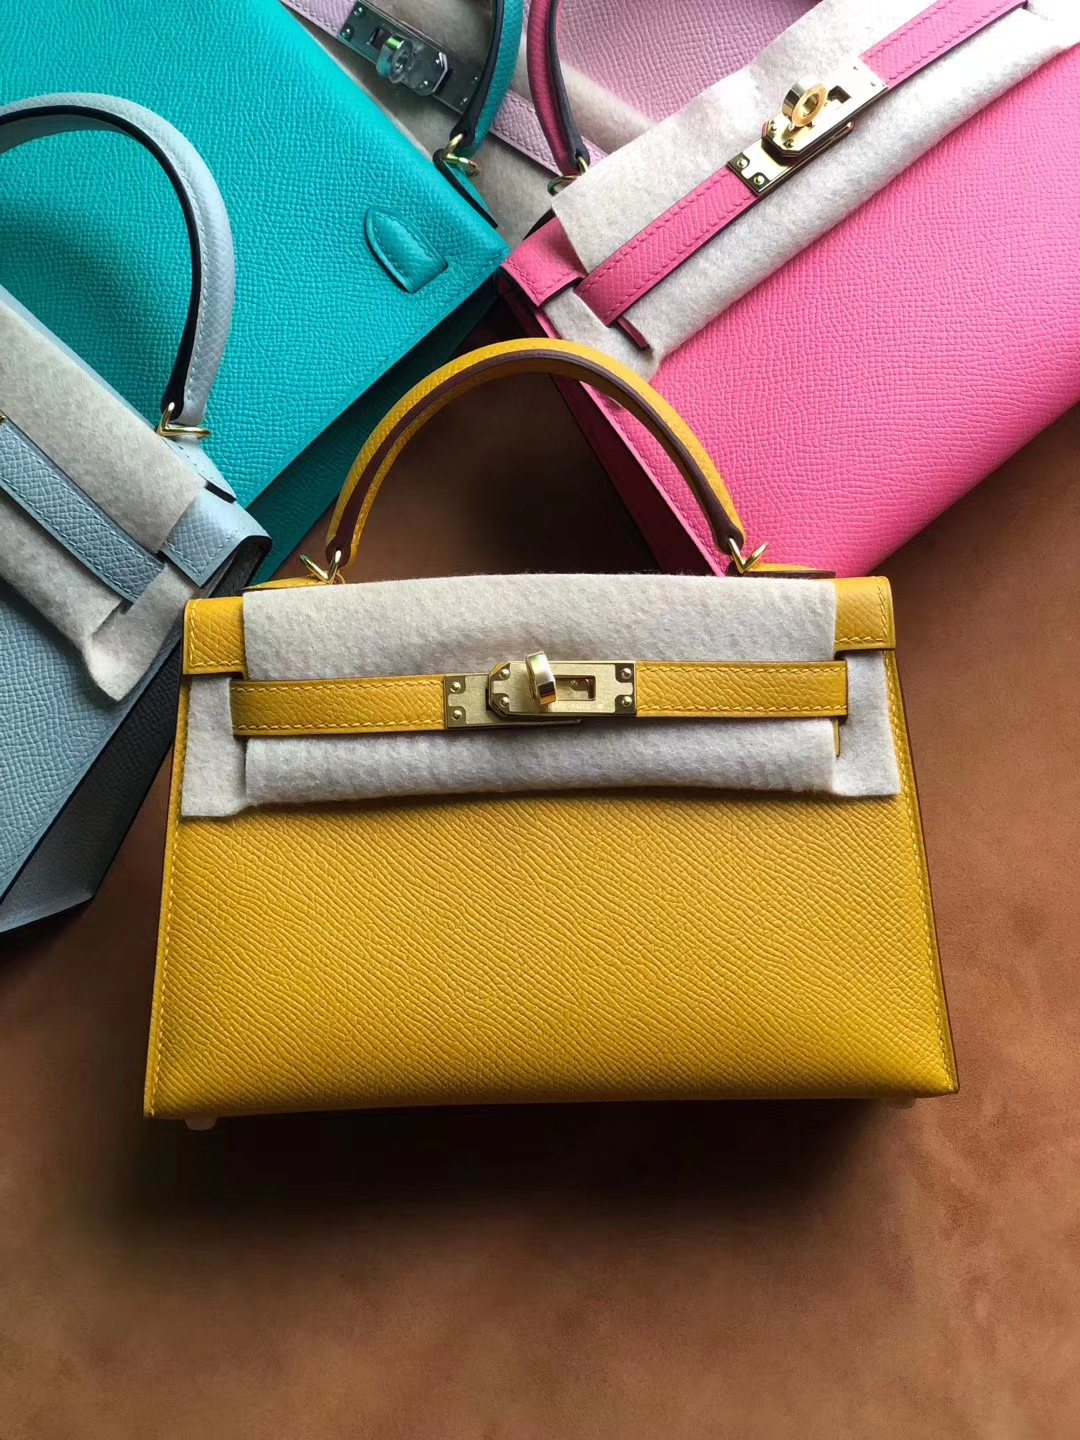 Stock Hermes 9D Ambre Yellow Epsom Calf Minikelly-2 Clutch Bag Gold Hardware